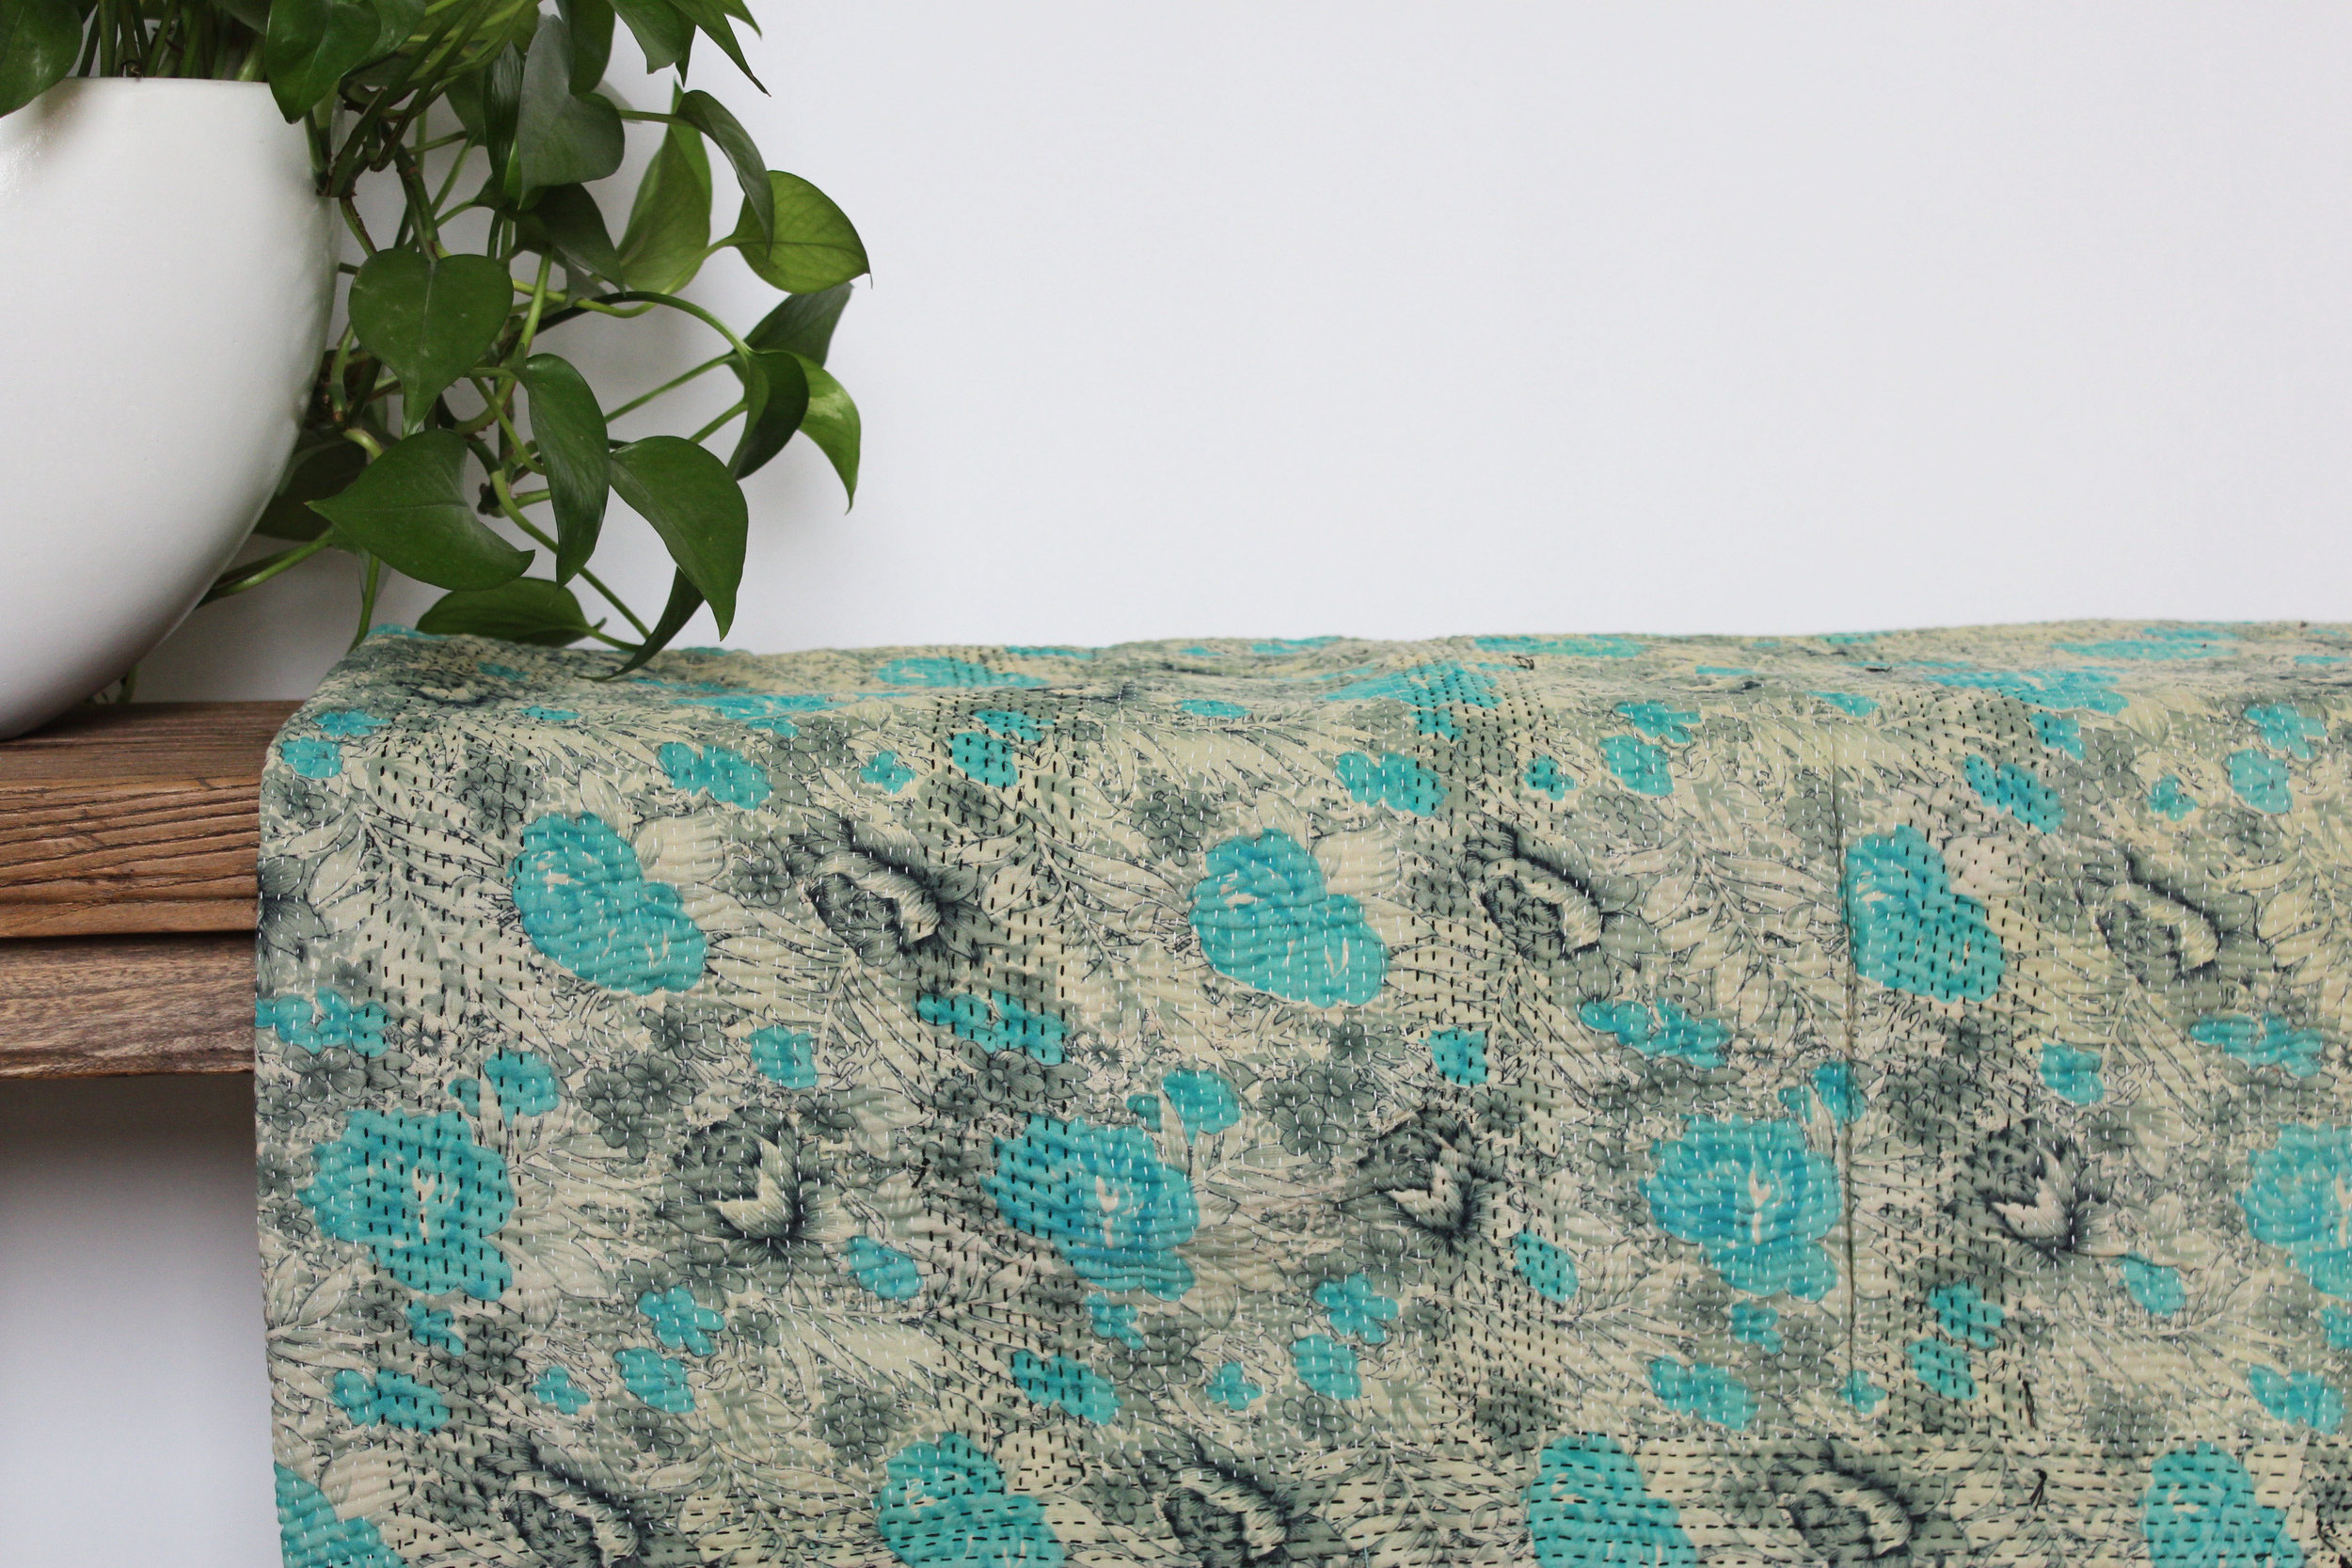 'Polly' - Kantha Quilt   - vintage kantha quilt from India  - different pattern on the reverse side  - Dimensions: 134x182 cm  575 RMB